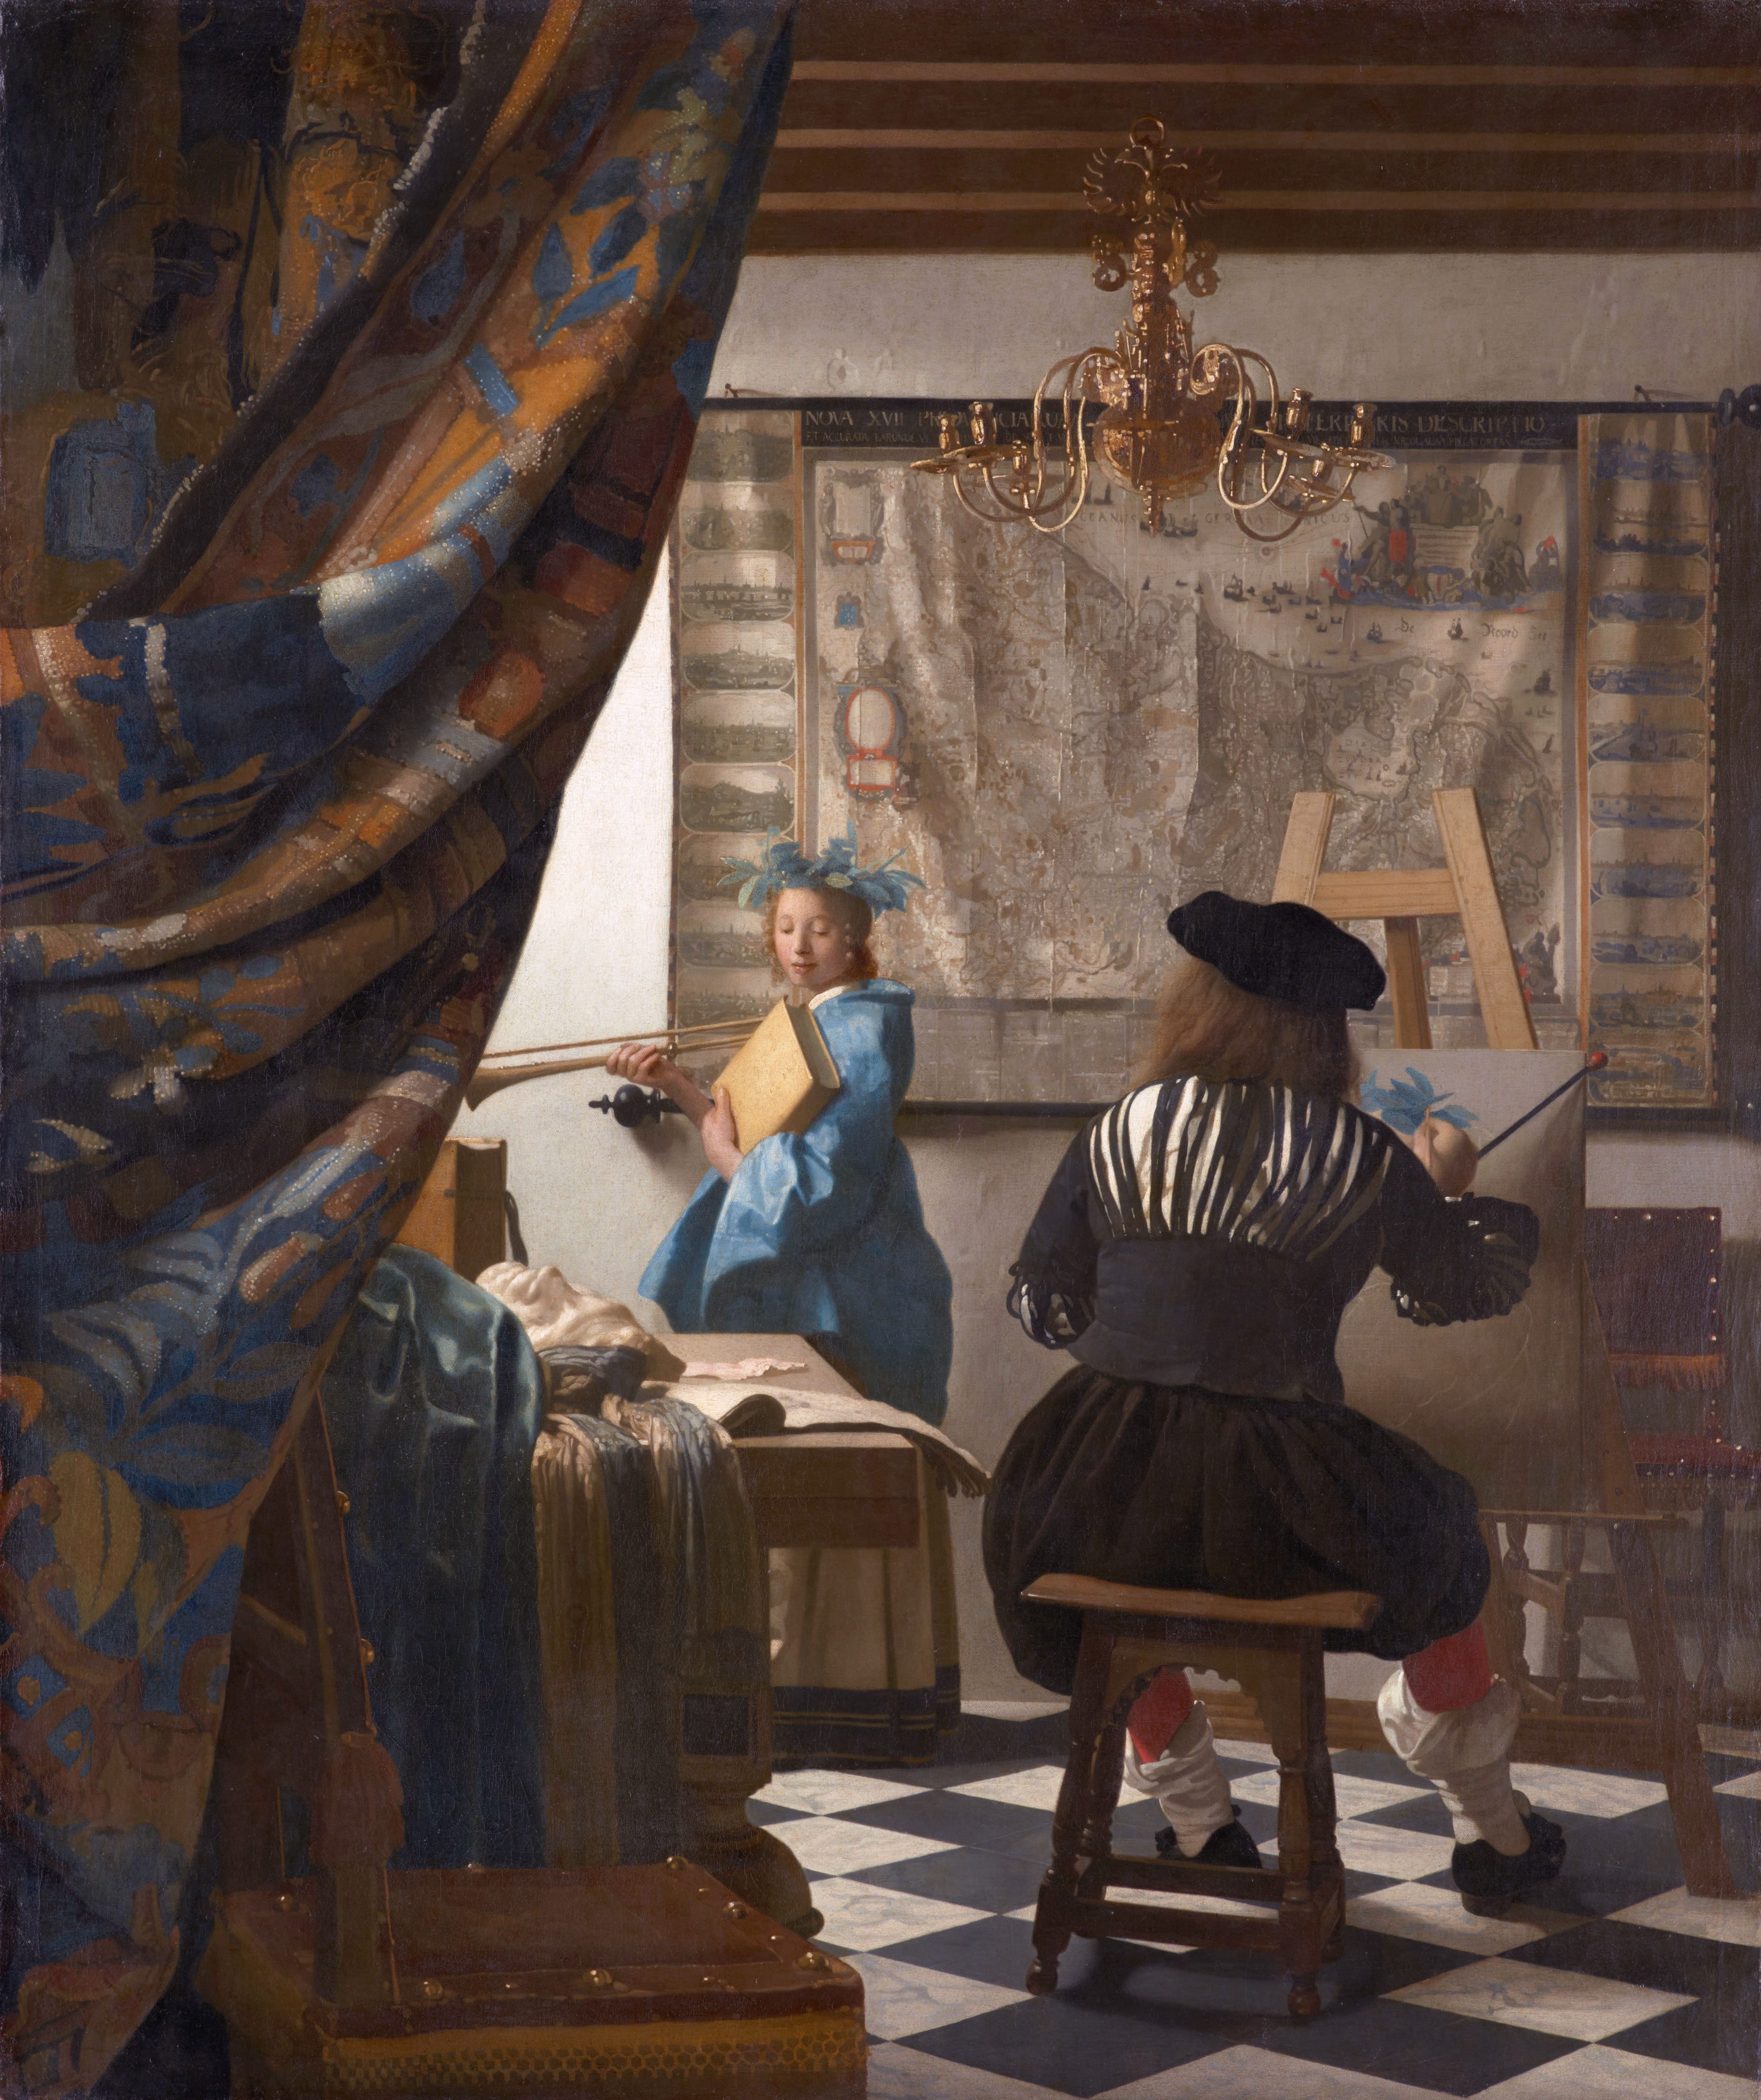 Les cartes dans la peinture de Vermeer / Maps in Vermeer's paintings